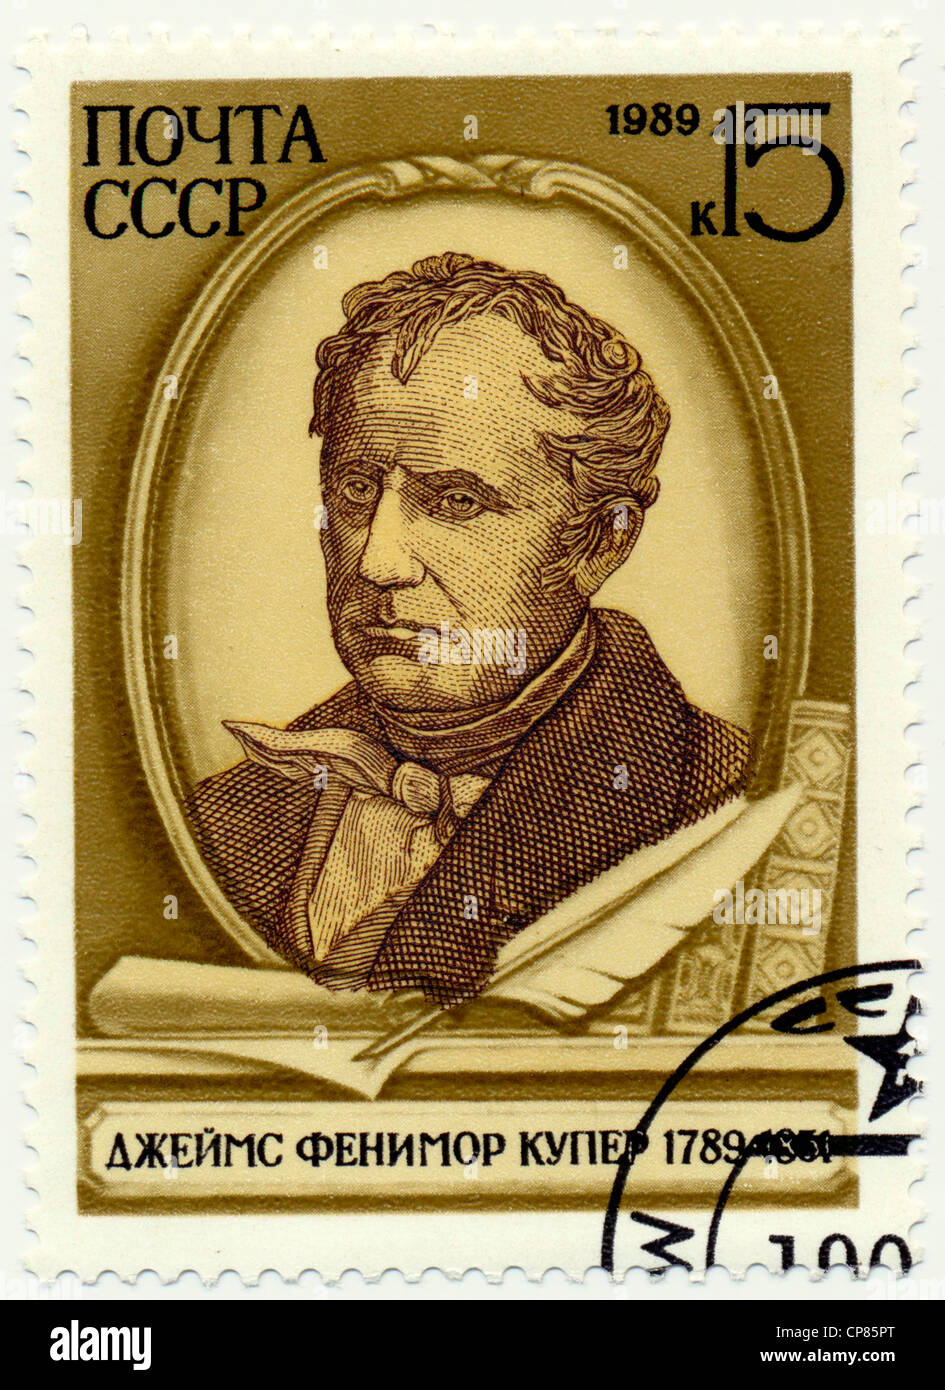 Historic postage stamps of the USSR, Historische Briefmarke, James Fenimore Cooper, 1989, UDSSR - Stock Image